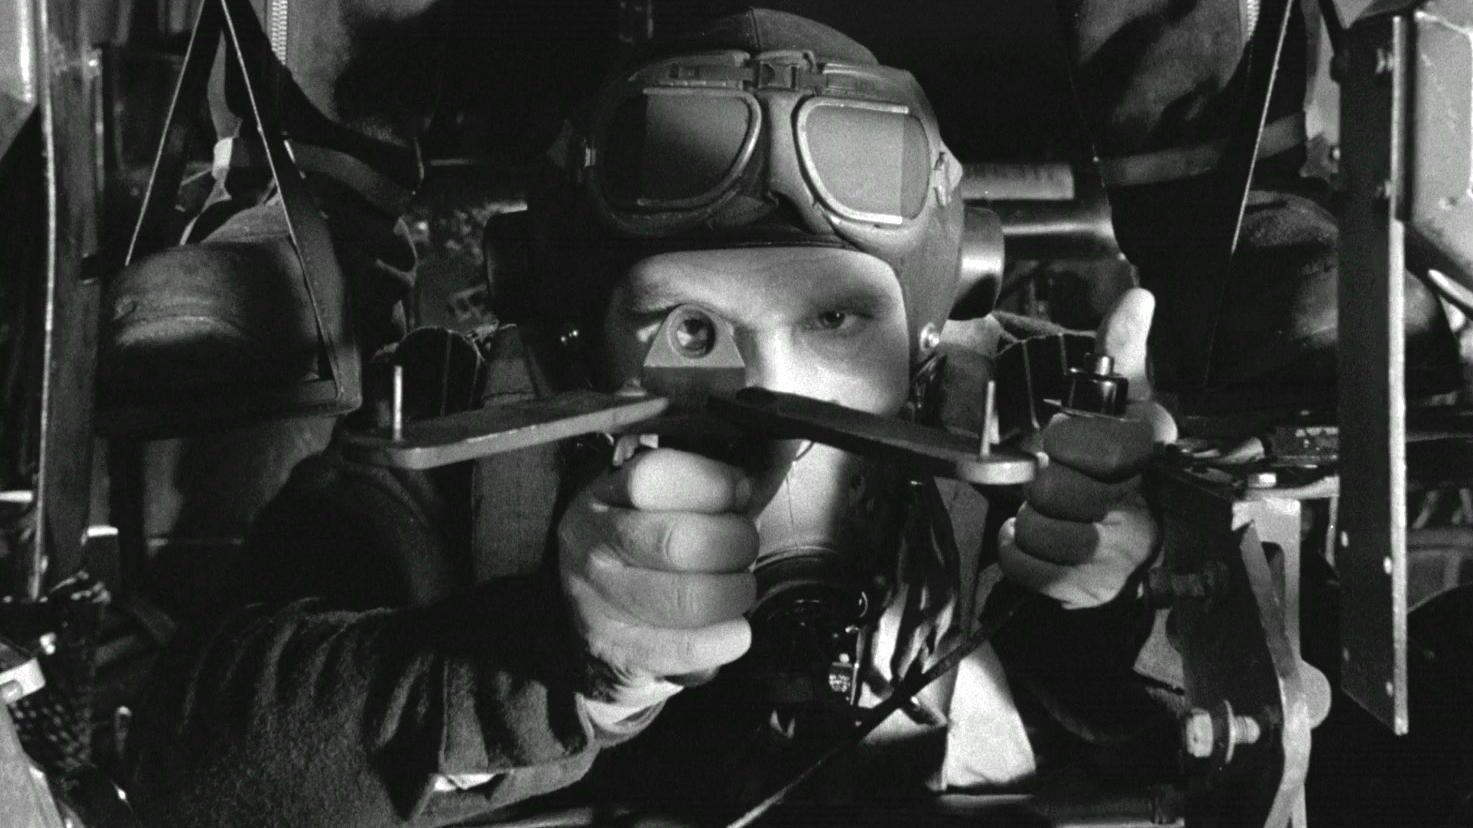 Take an exclusive first look at 1955 classic The Dam Busters